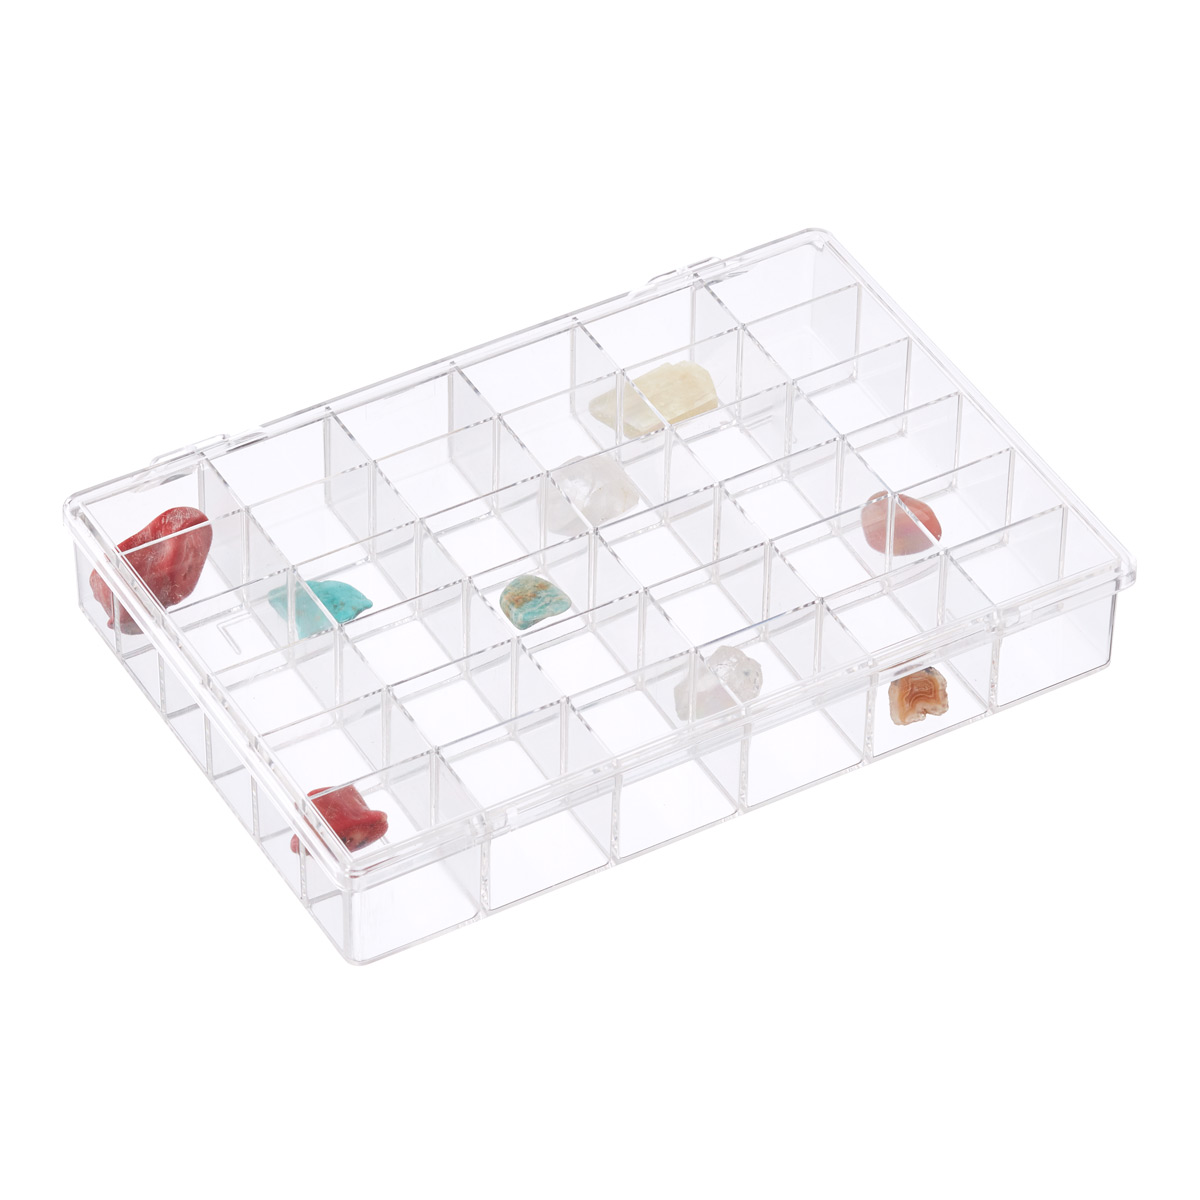 8 compartment box ideal for craft and also board game components